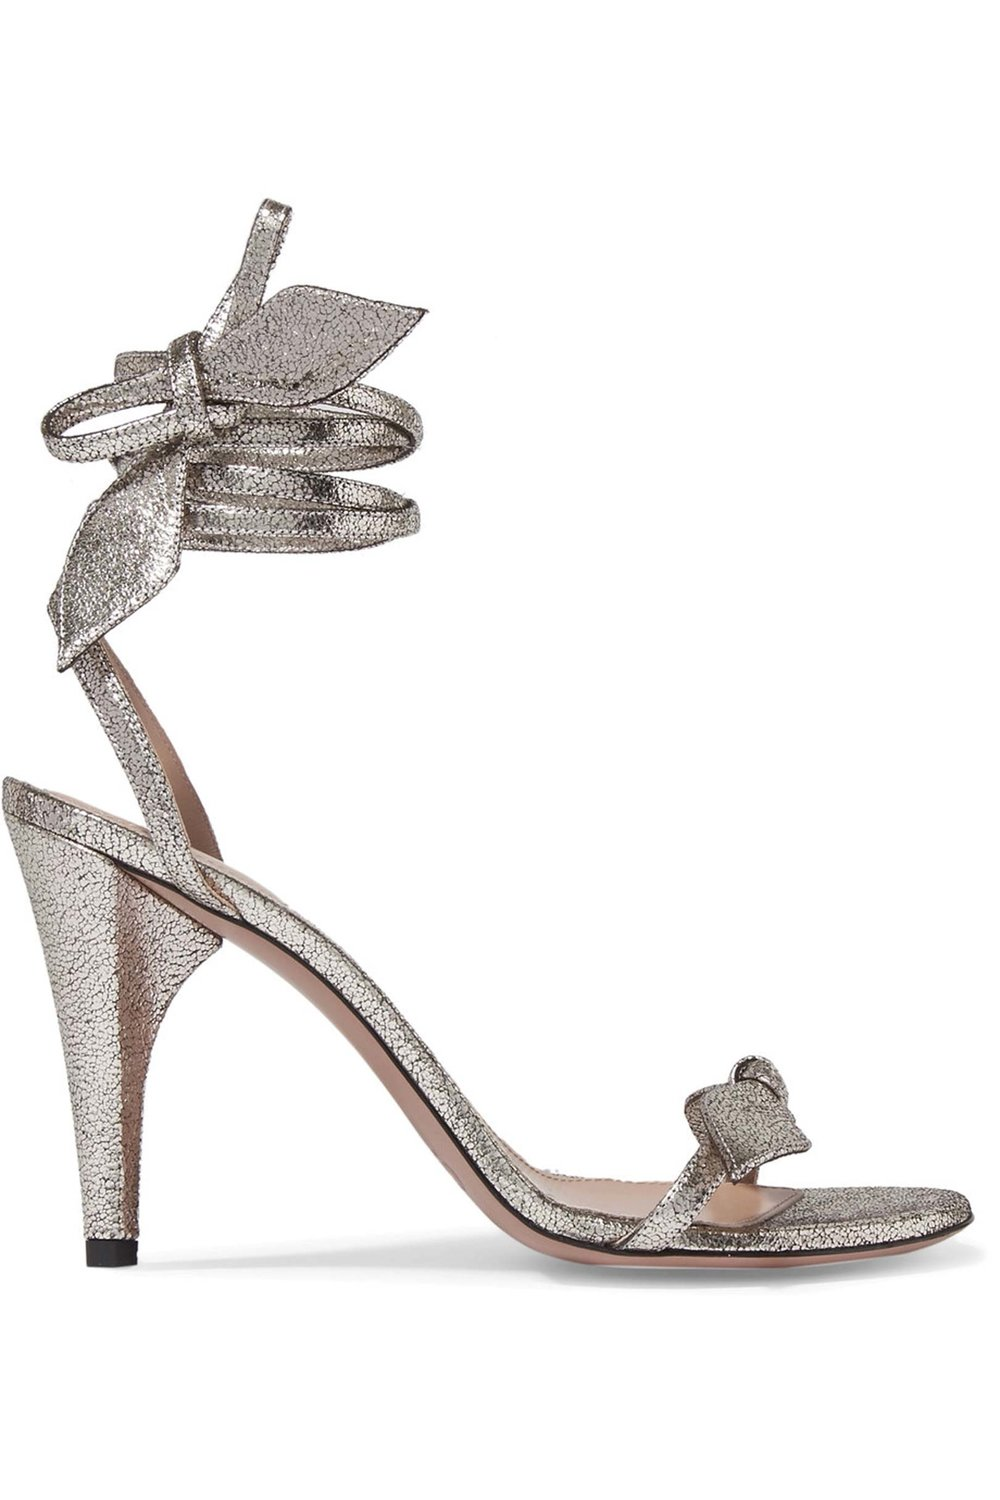 Mike Metallic Cracked-Leather Sandals by Chloé US$795